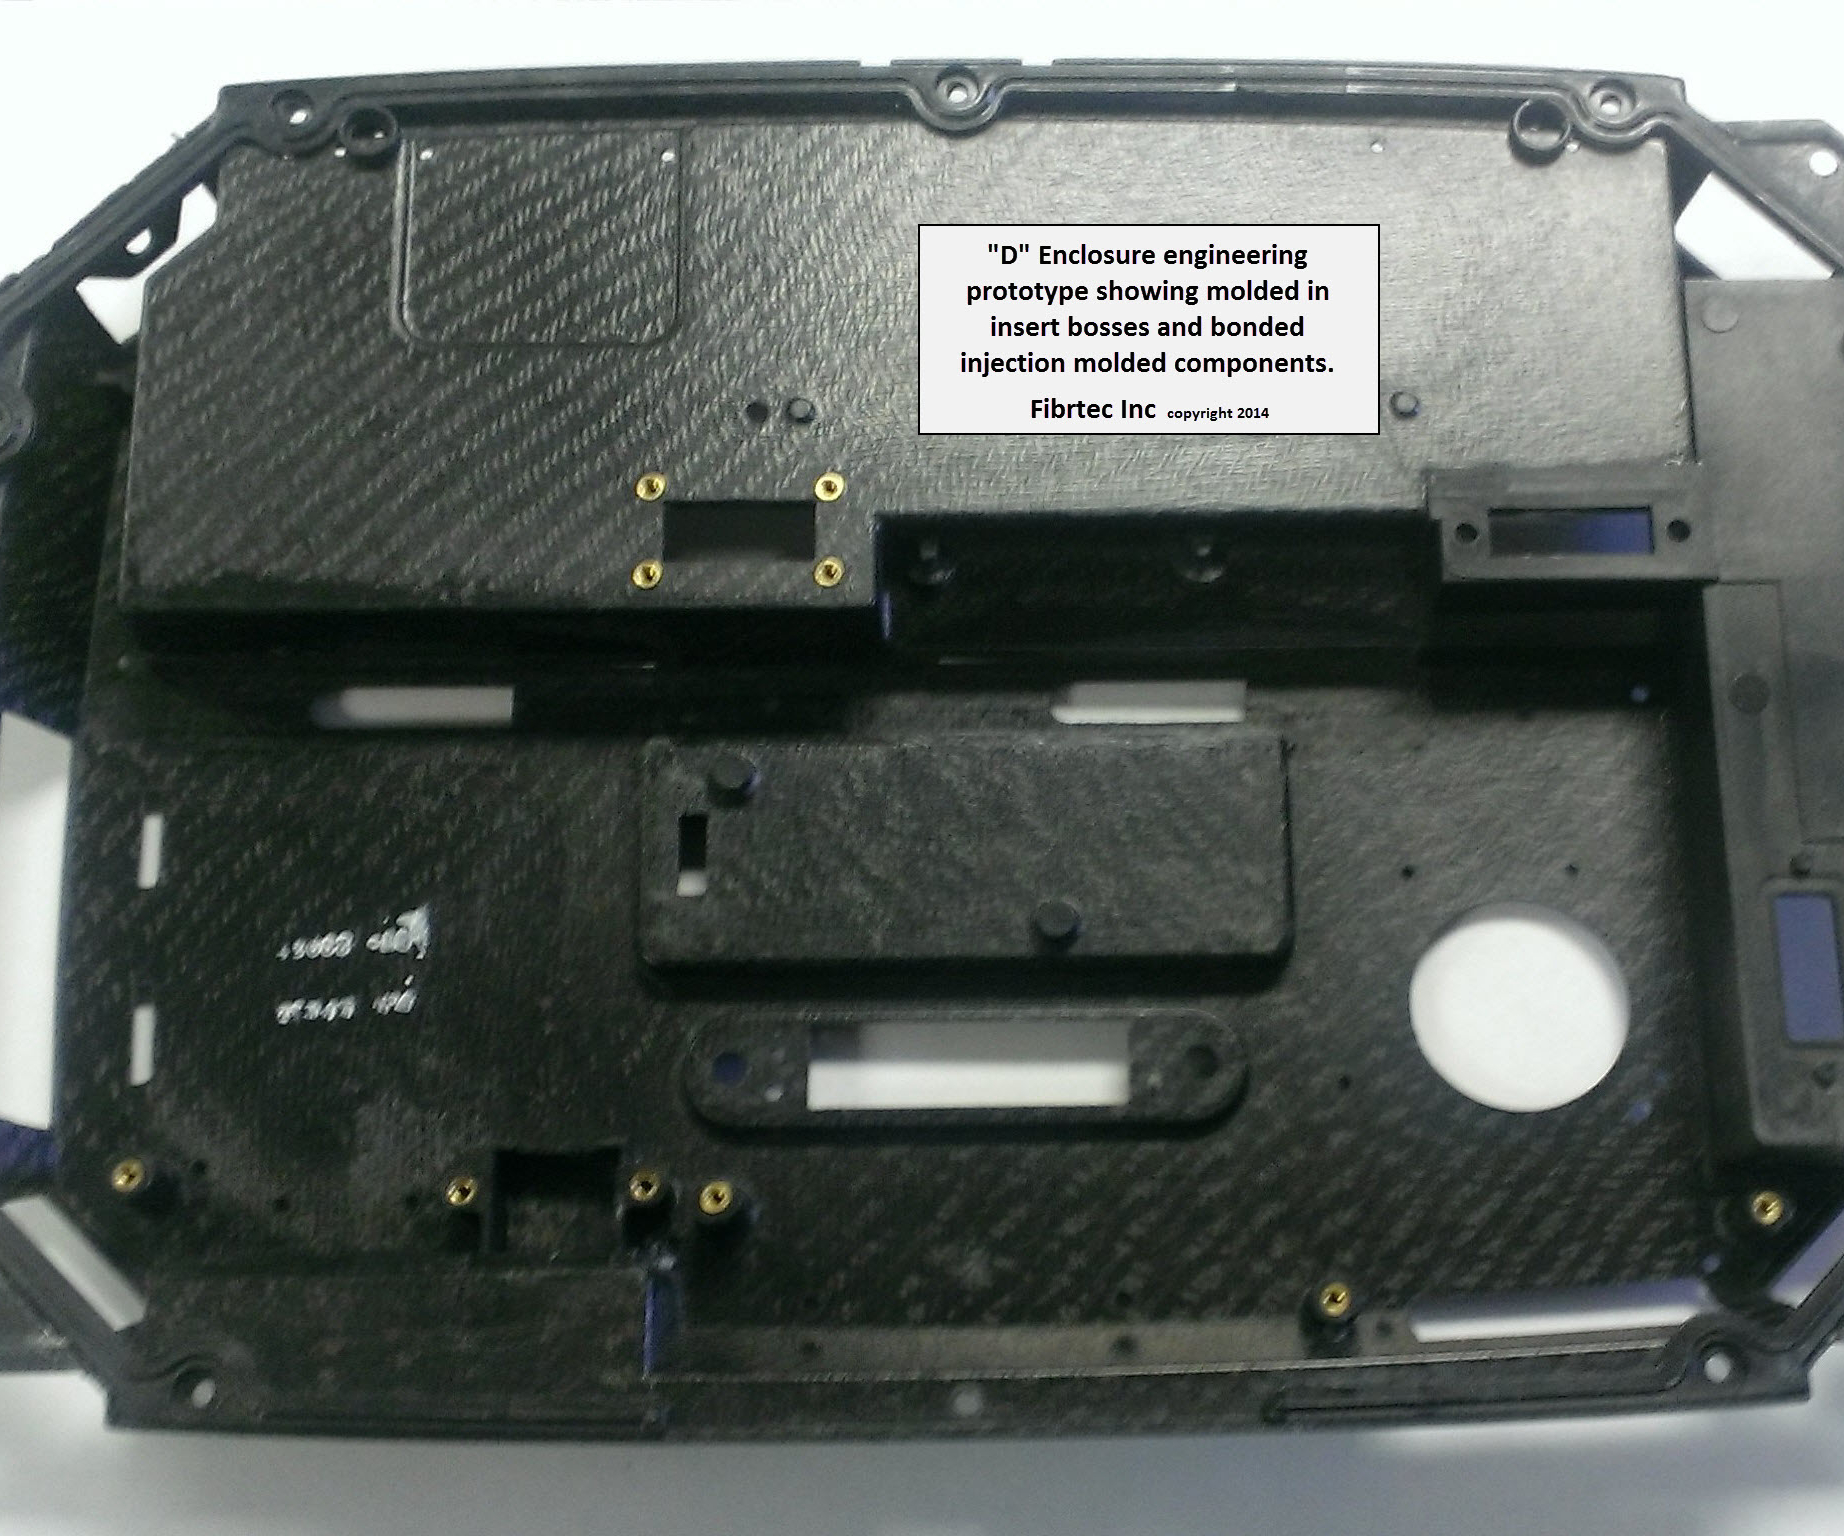 compression molding, composites overmolding